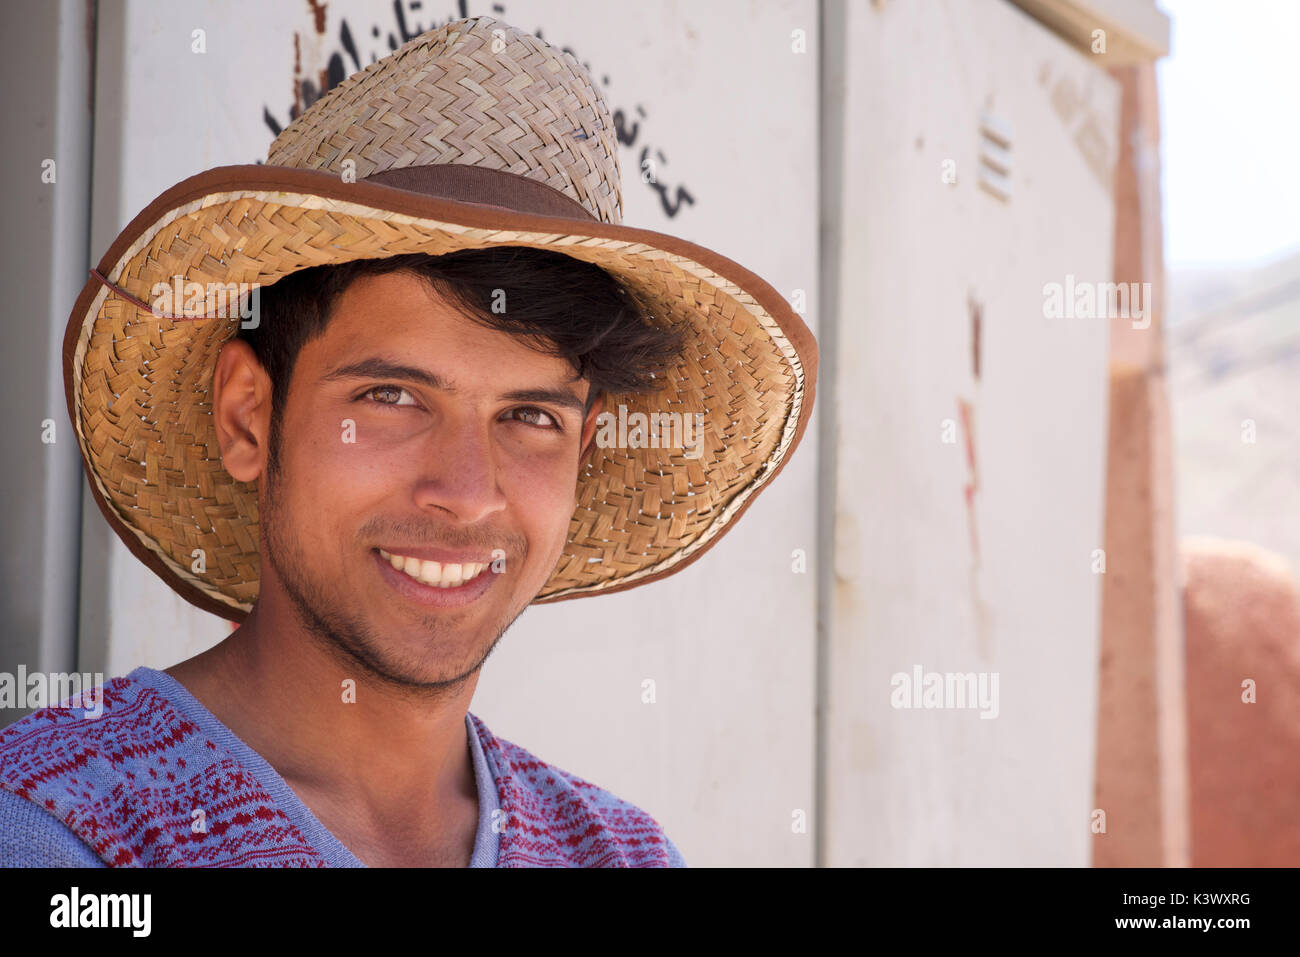 Portrait of an Iranian man at Abyaneh village, Barzrud Rural District, Isfahan Province, Iran - Stock Image